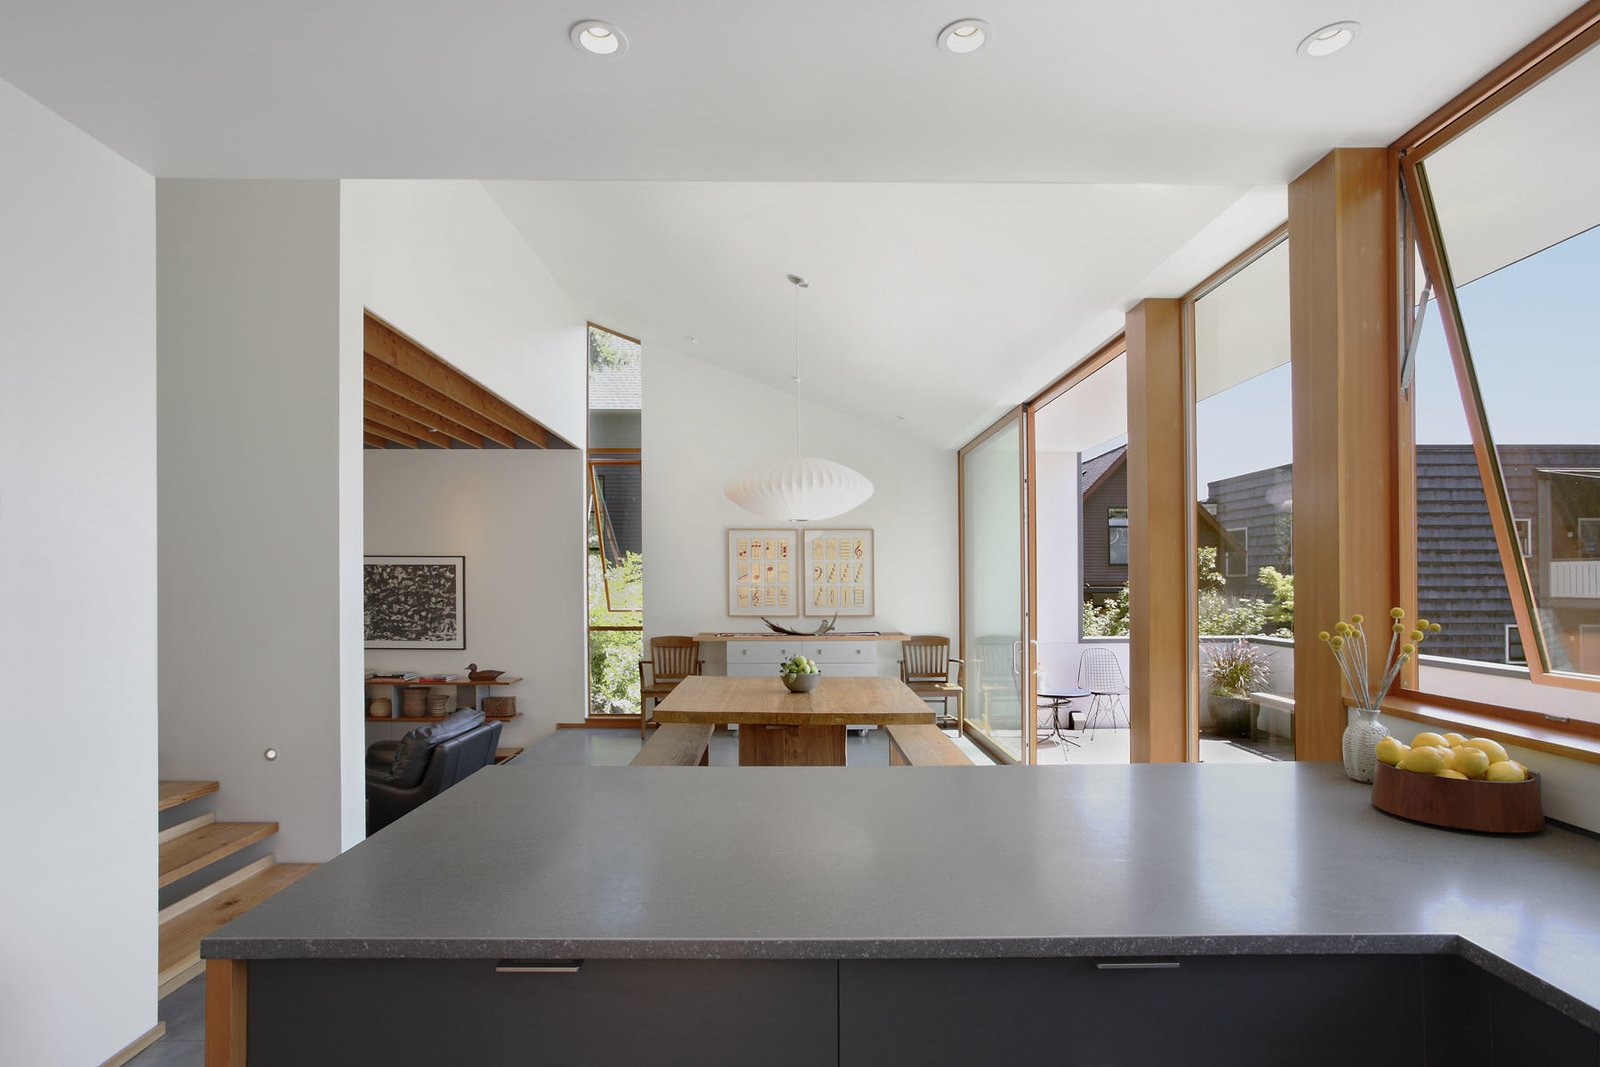 """A George Nelson Saucer Pendant hangs over the table. Behind it, a vertical slot window frames a Douglas fir tree while editing out the windows of a nearby town house. """"All the openings were composed in direct response to appealing fragments of the site and to avoid relationships that would leave the owners feeling exposed,"""" Schaer says. Tagged: Kitchen.  Photo 4 of 11 in Seattle Home Carefully Blocks Out Neighbors, While Celebrating Natural Surroundings"""